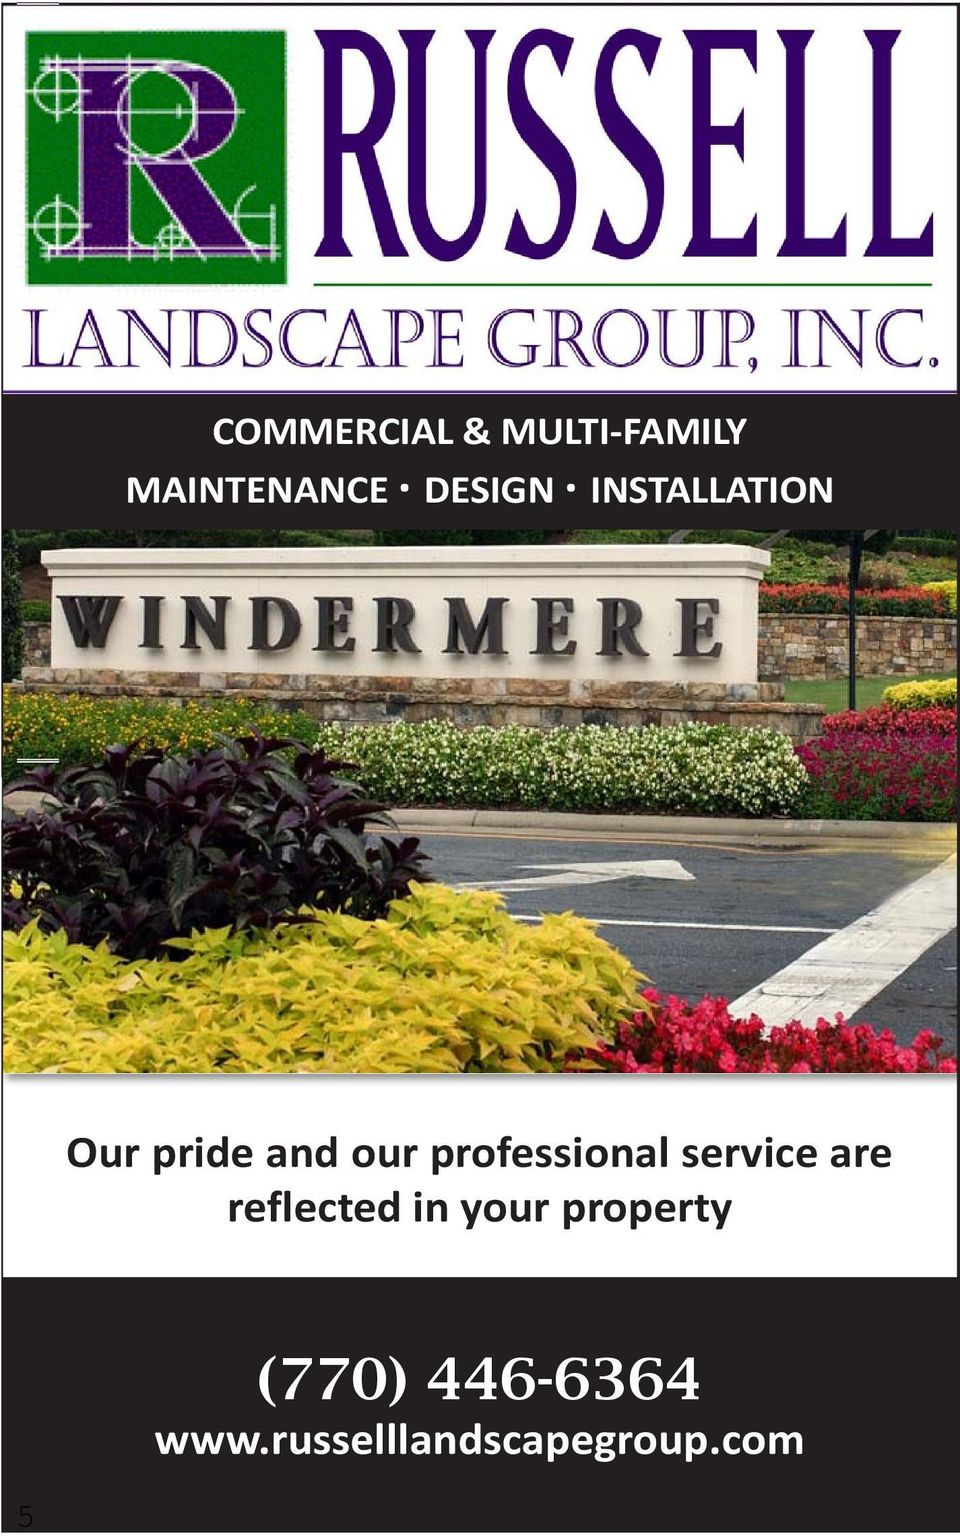 pride and our professional service are reflected